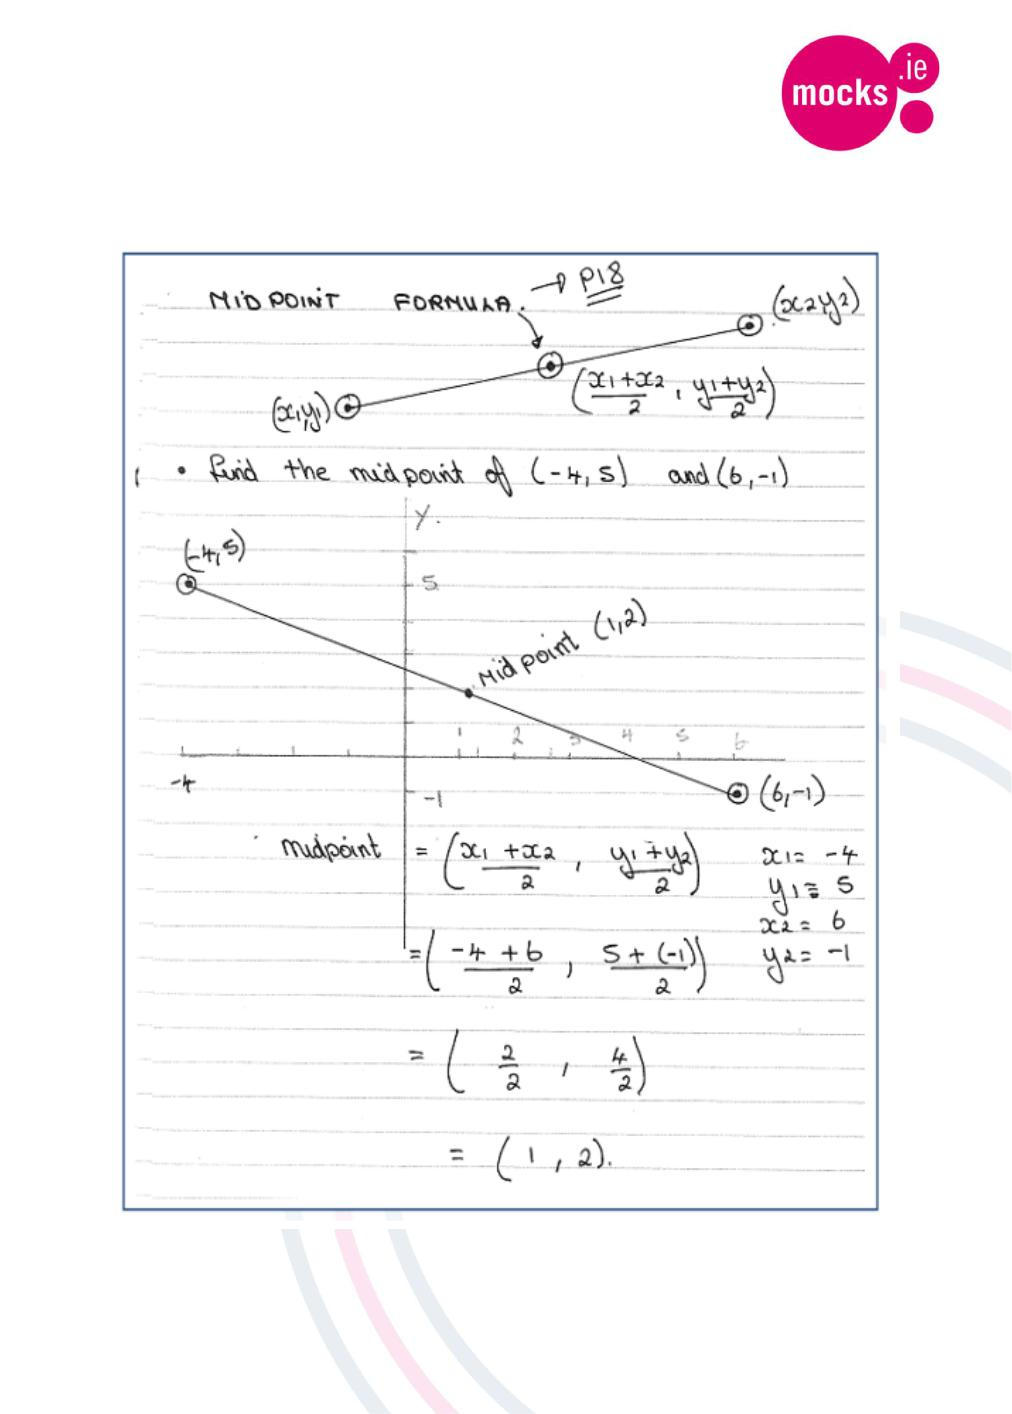 Geometry 1 Revision eNotes Distance Formula, Midpoint